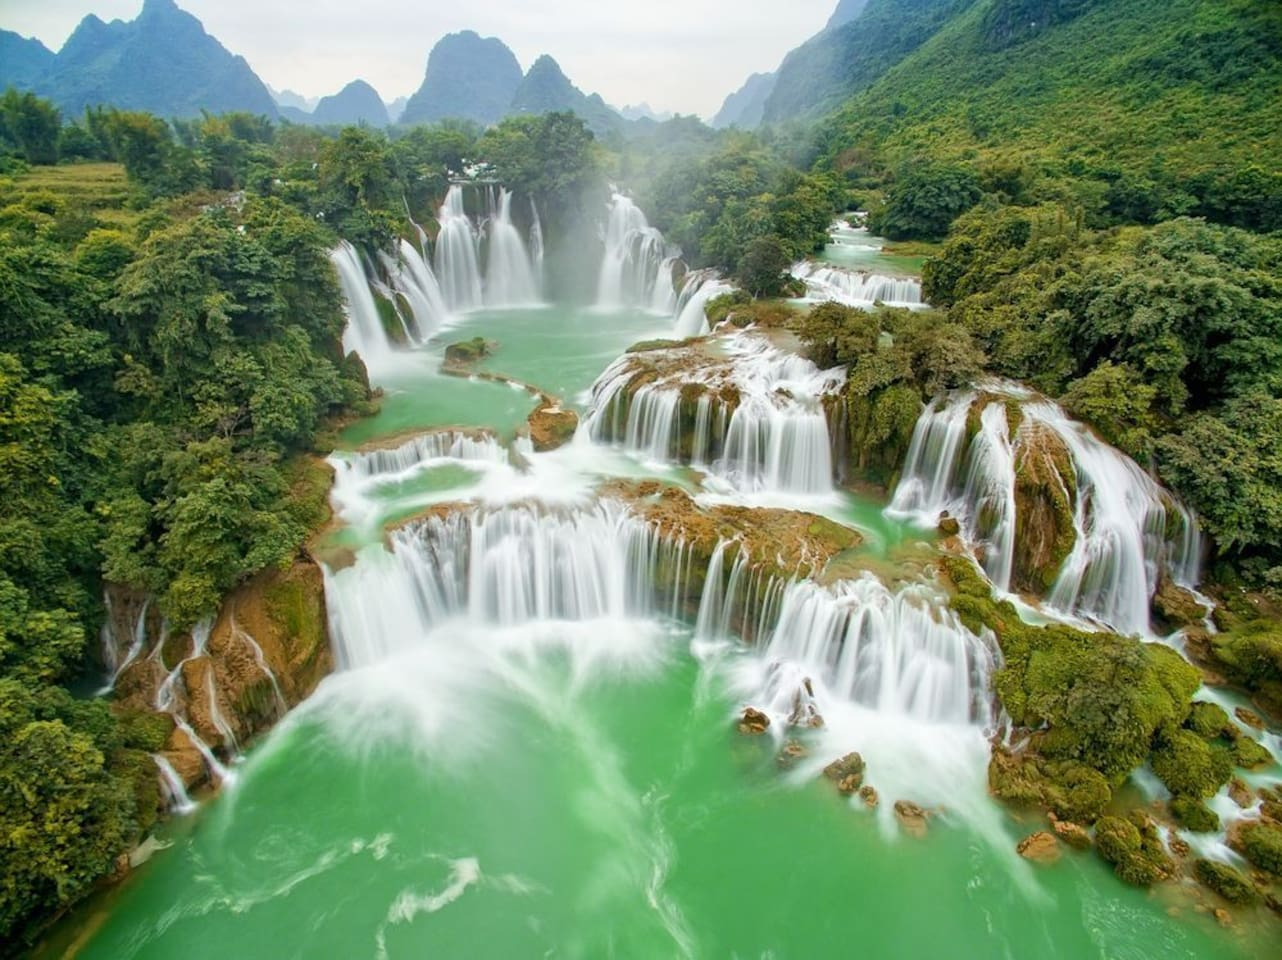 Ban Gioc Waterfall is one of Vietnam's best-known waterfalls.